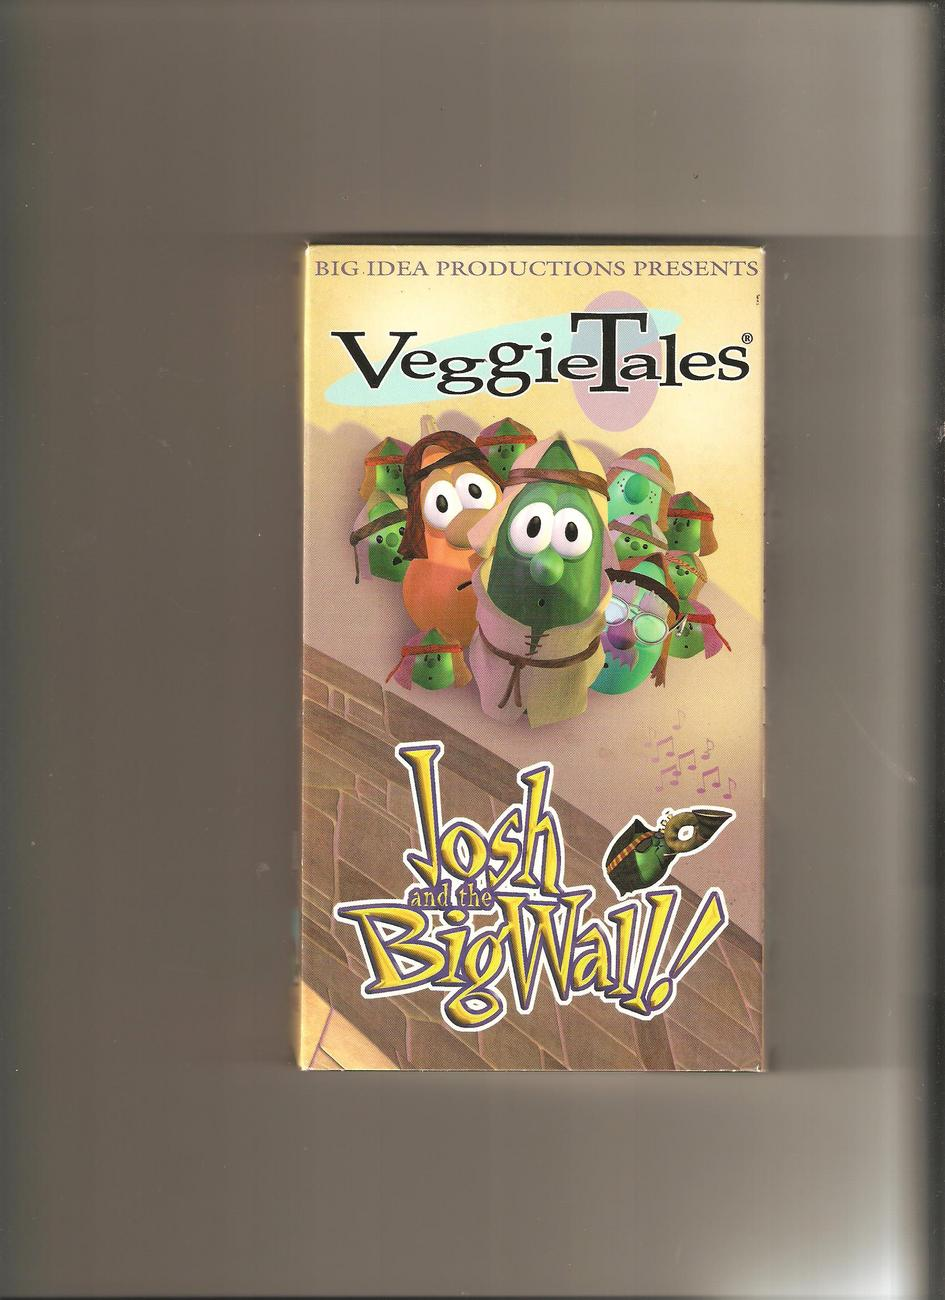 Veggietalesjosh the bigwall